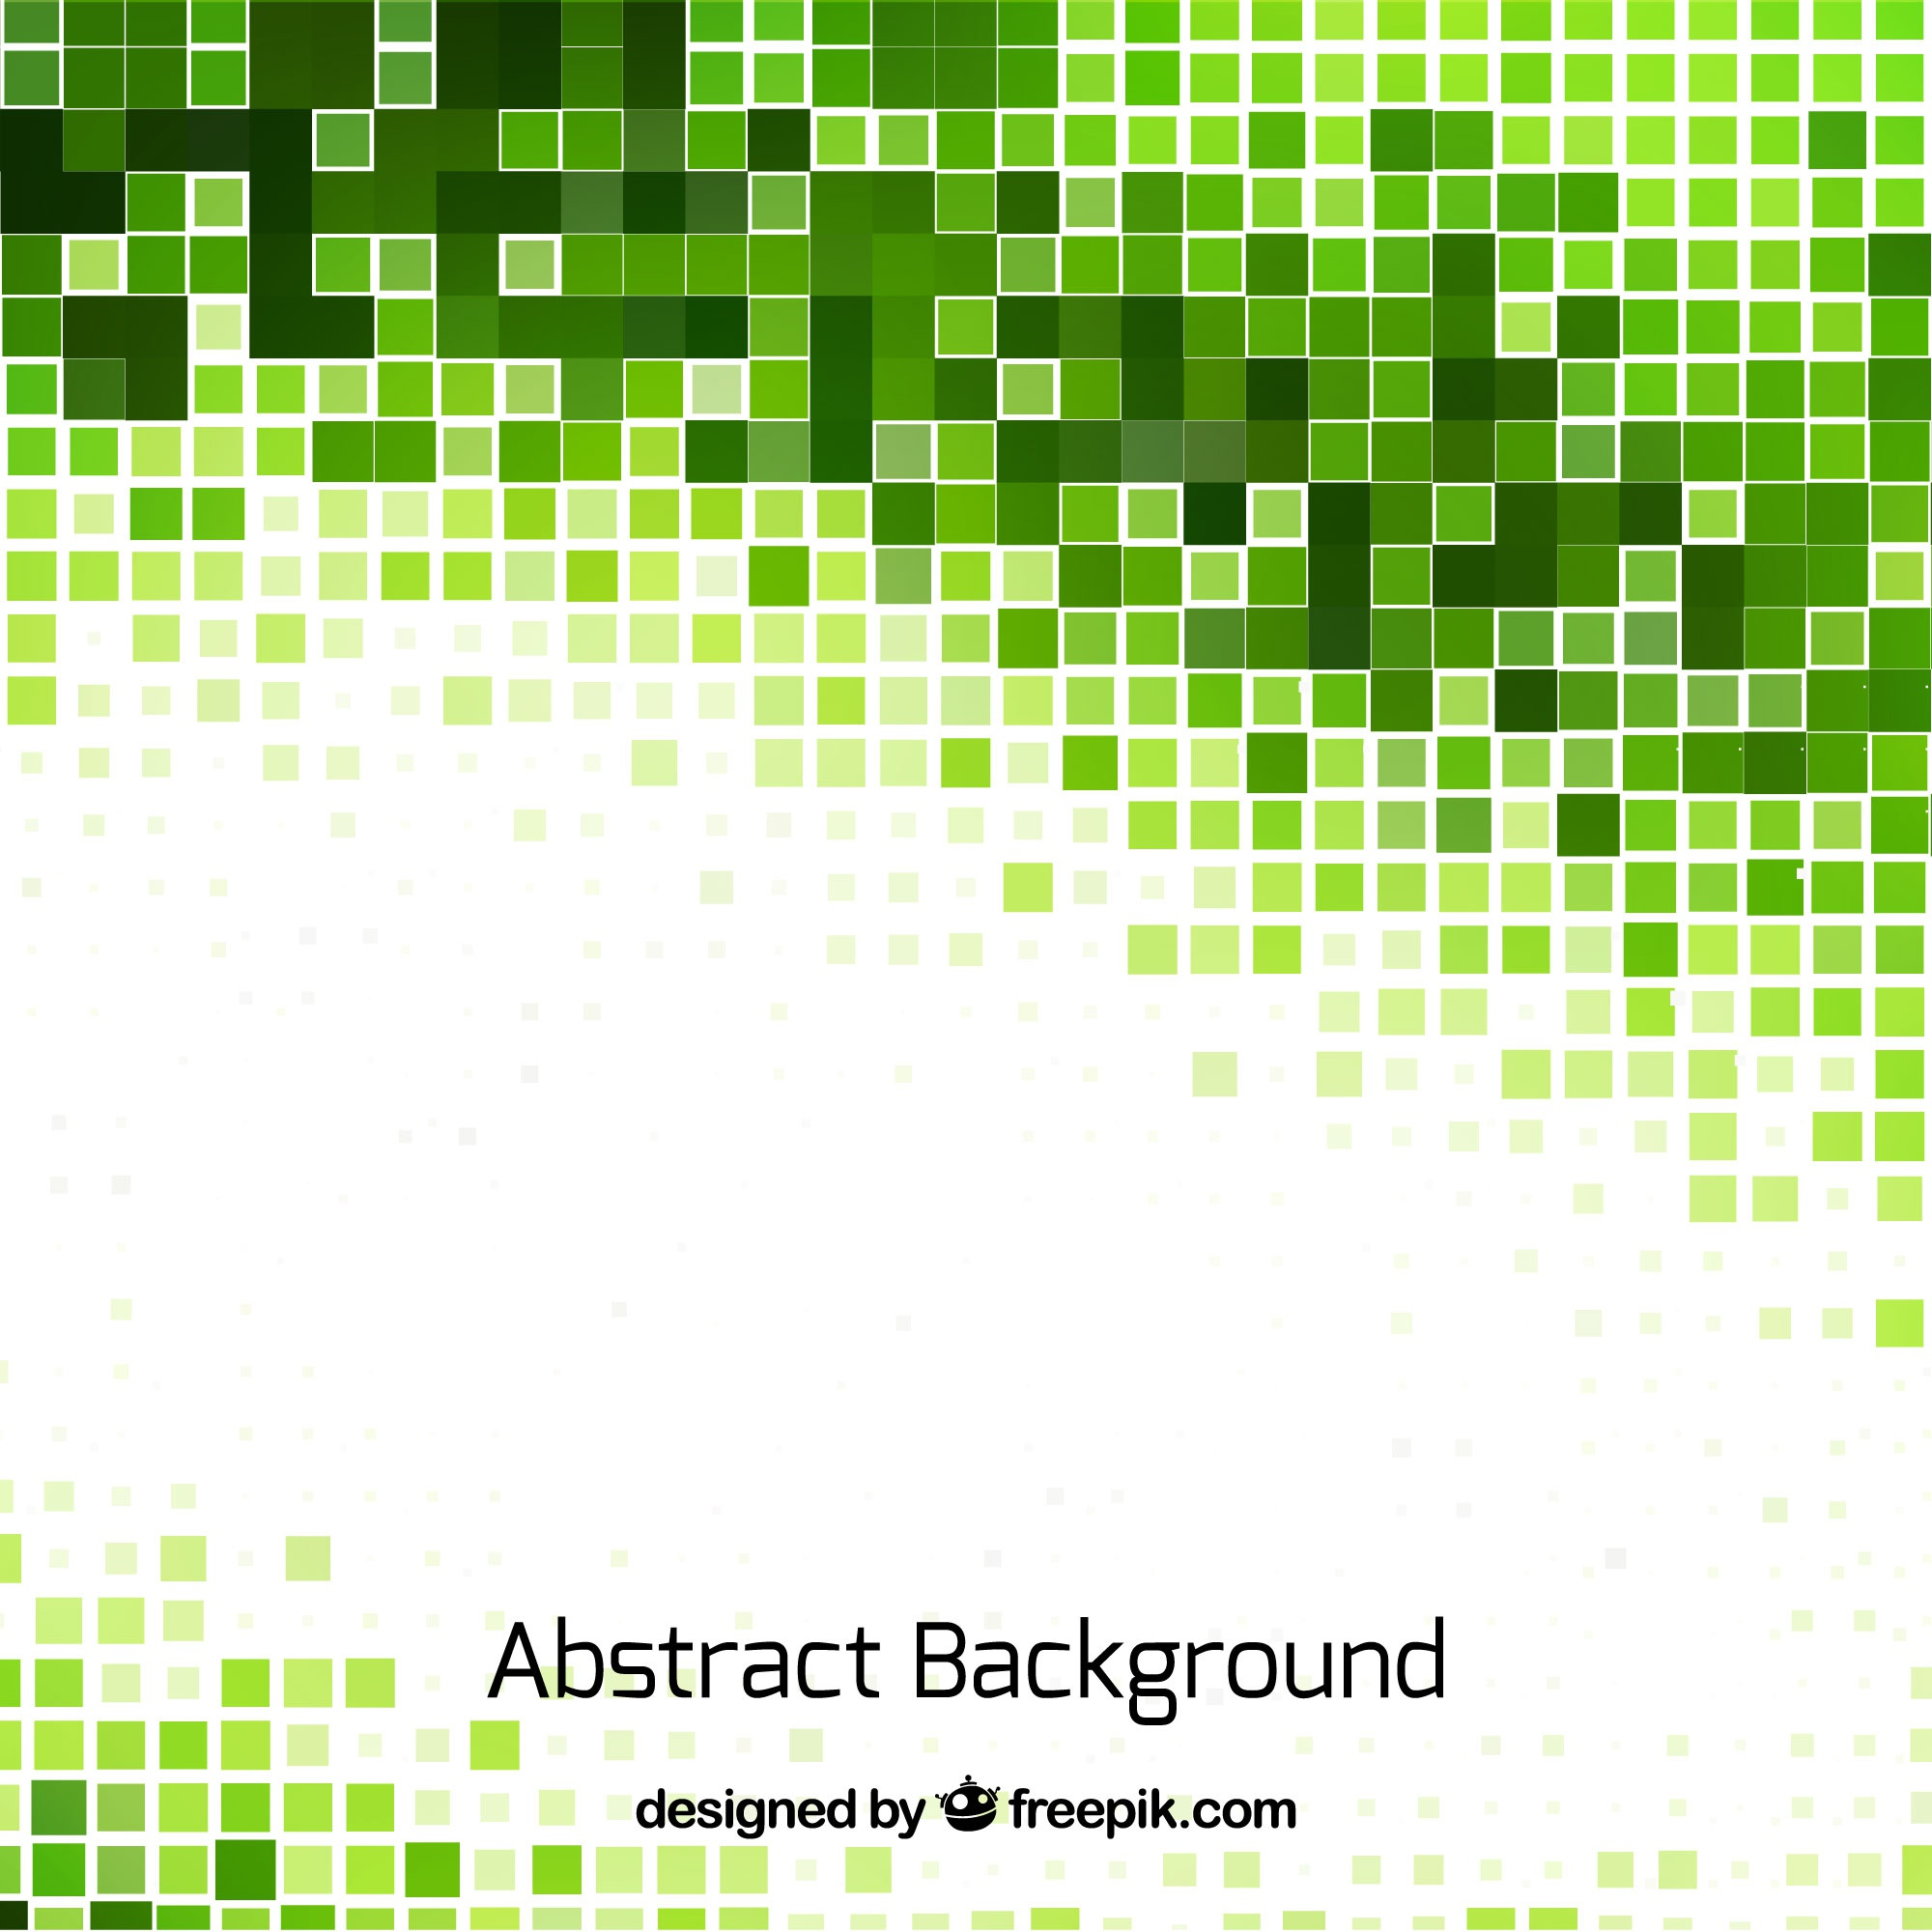 Abstract background of green mosaics